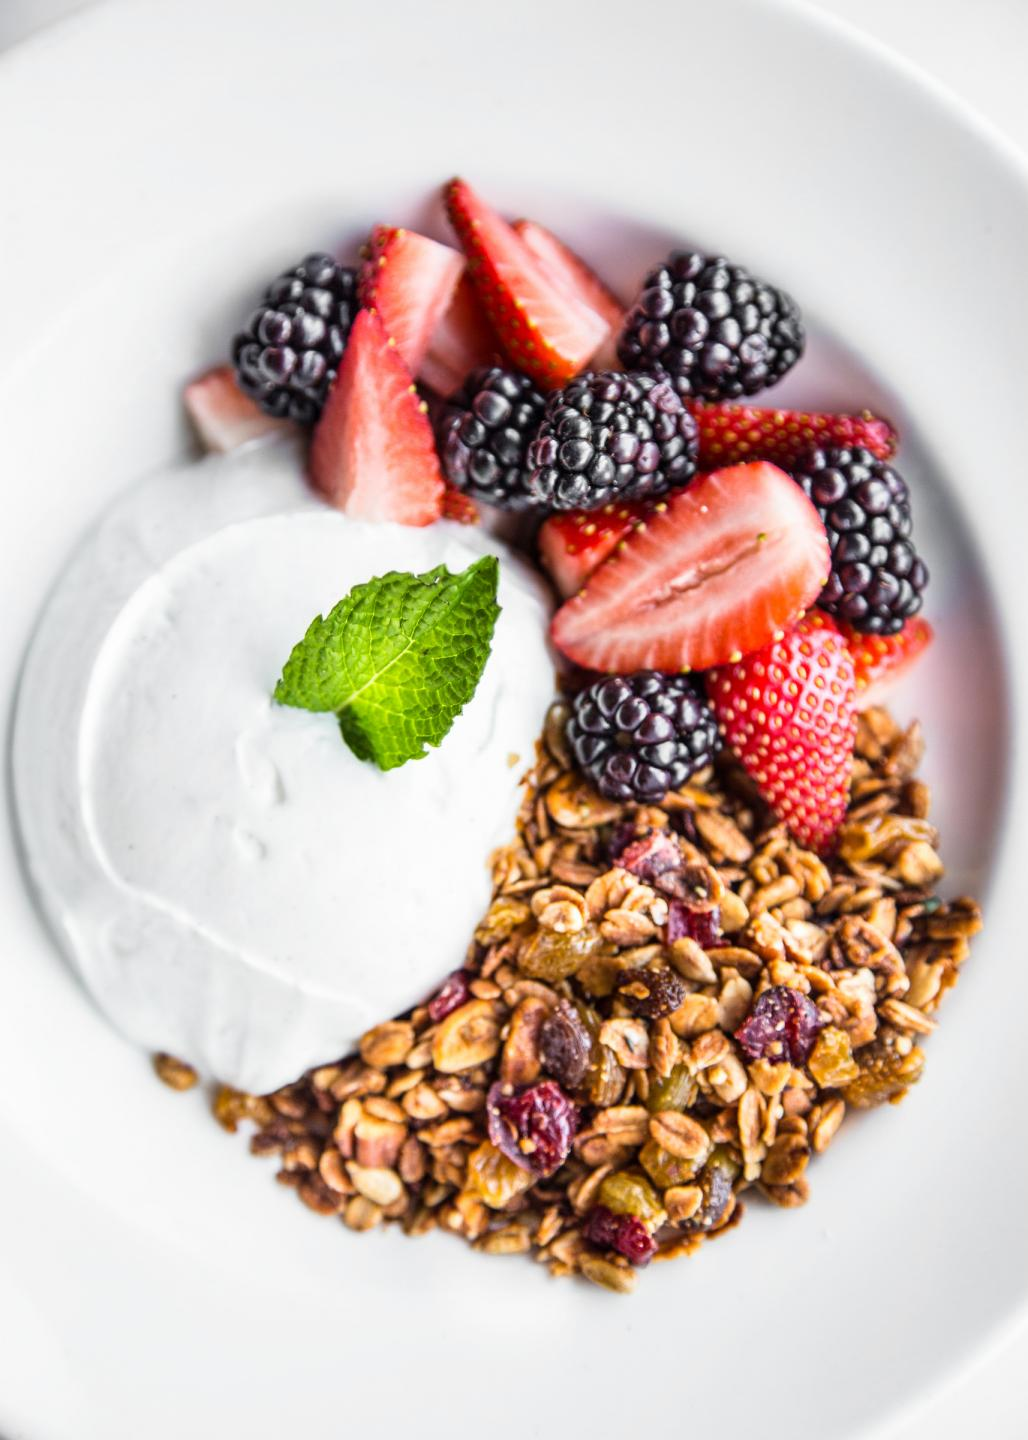 Beatrix Greek Yogurt with berries and granola